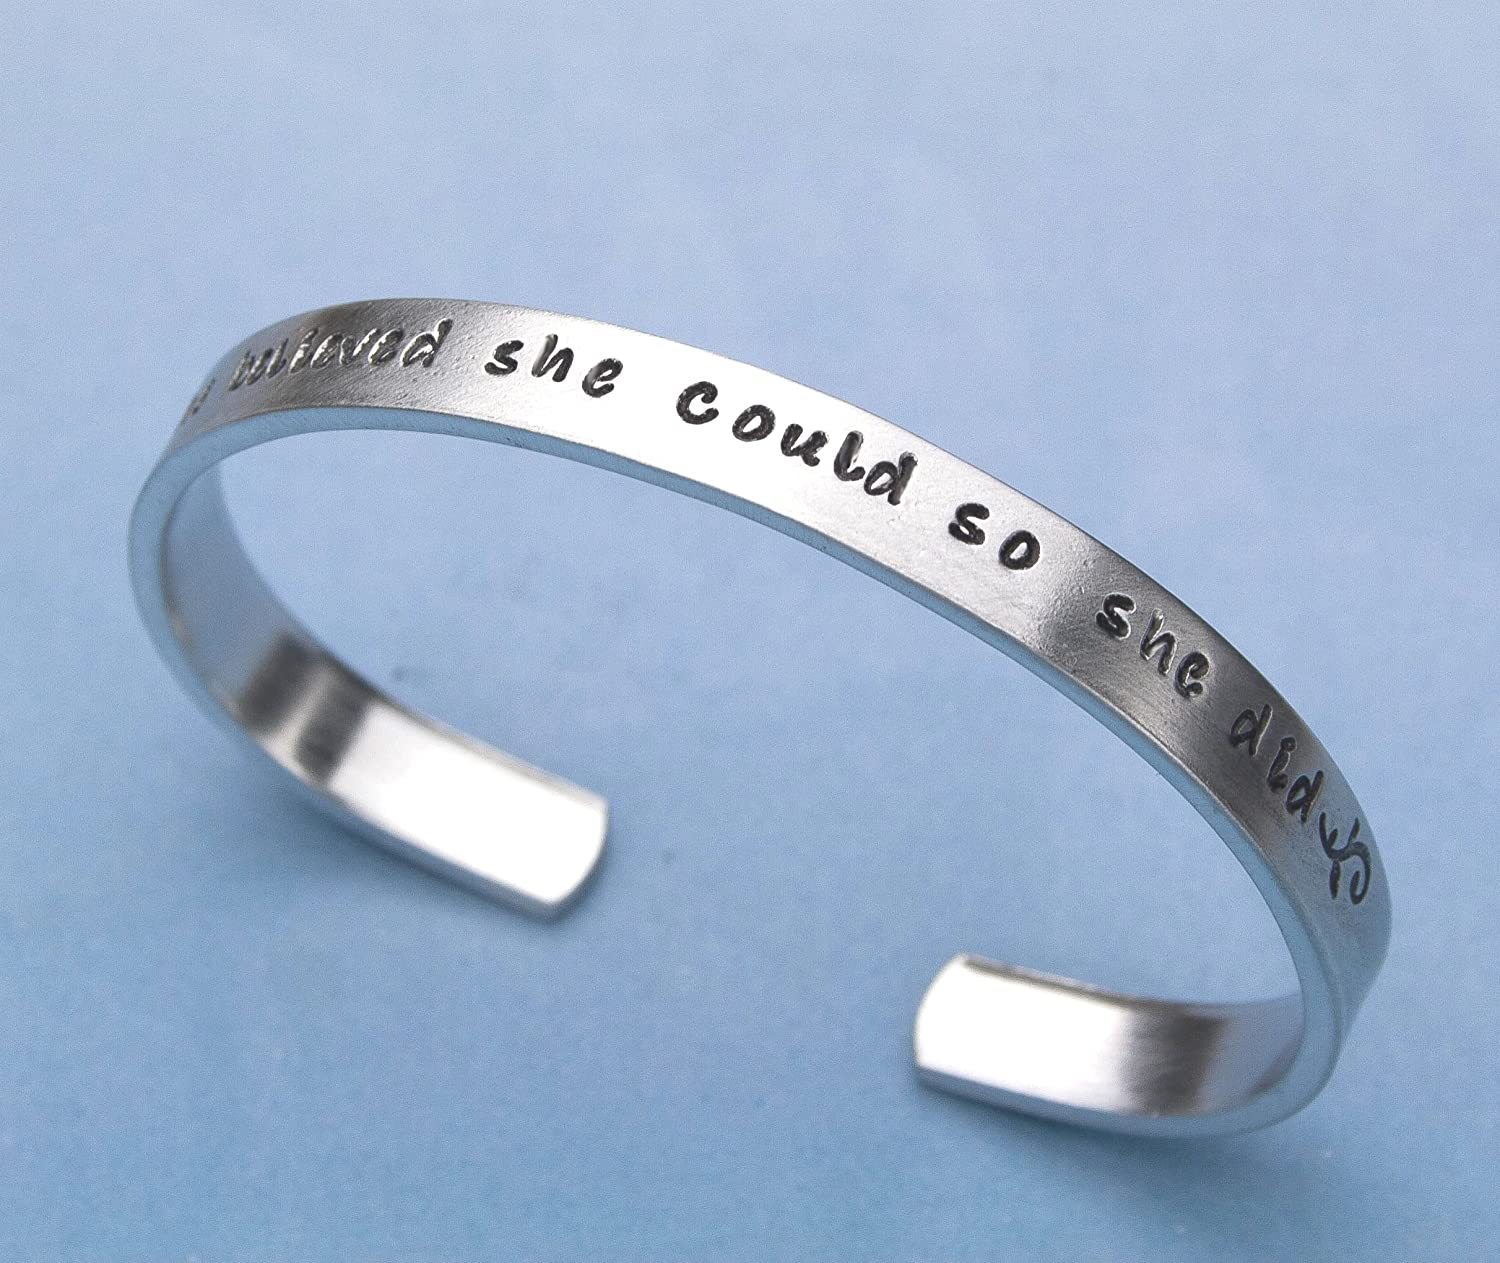 Inspirational Bracelet, Quote Jewelry, She Believed She Could So She Did Hand Stamped Bracelet, Aluminum 6